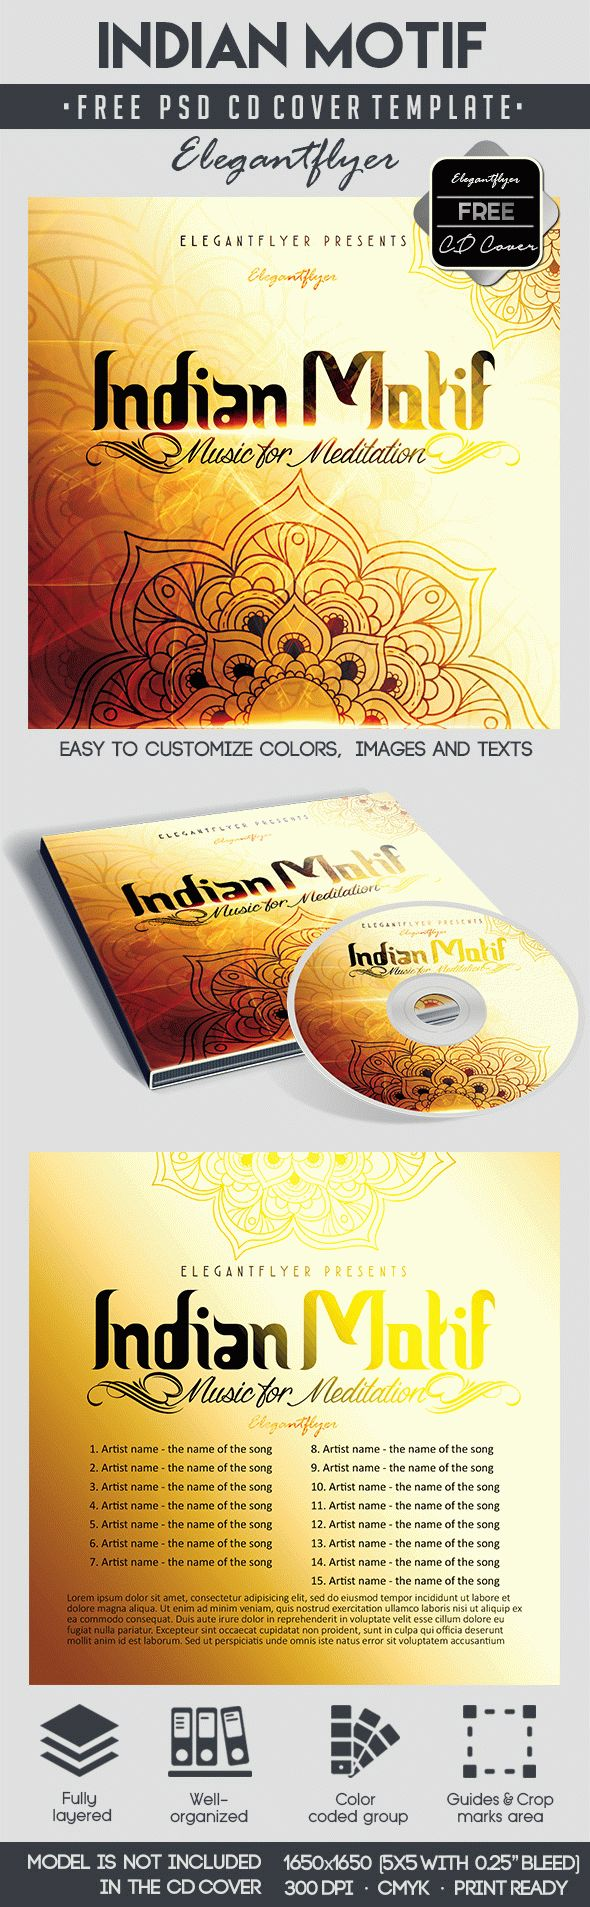 Indian Motif – Free CD Cover PSD Template